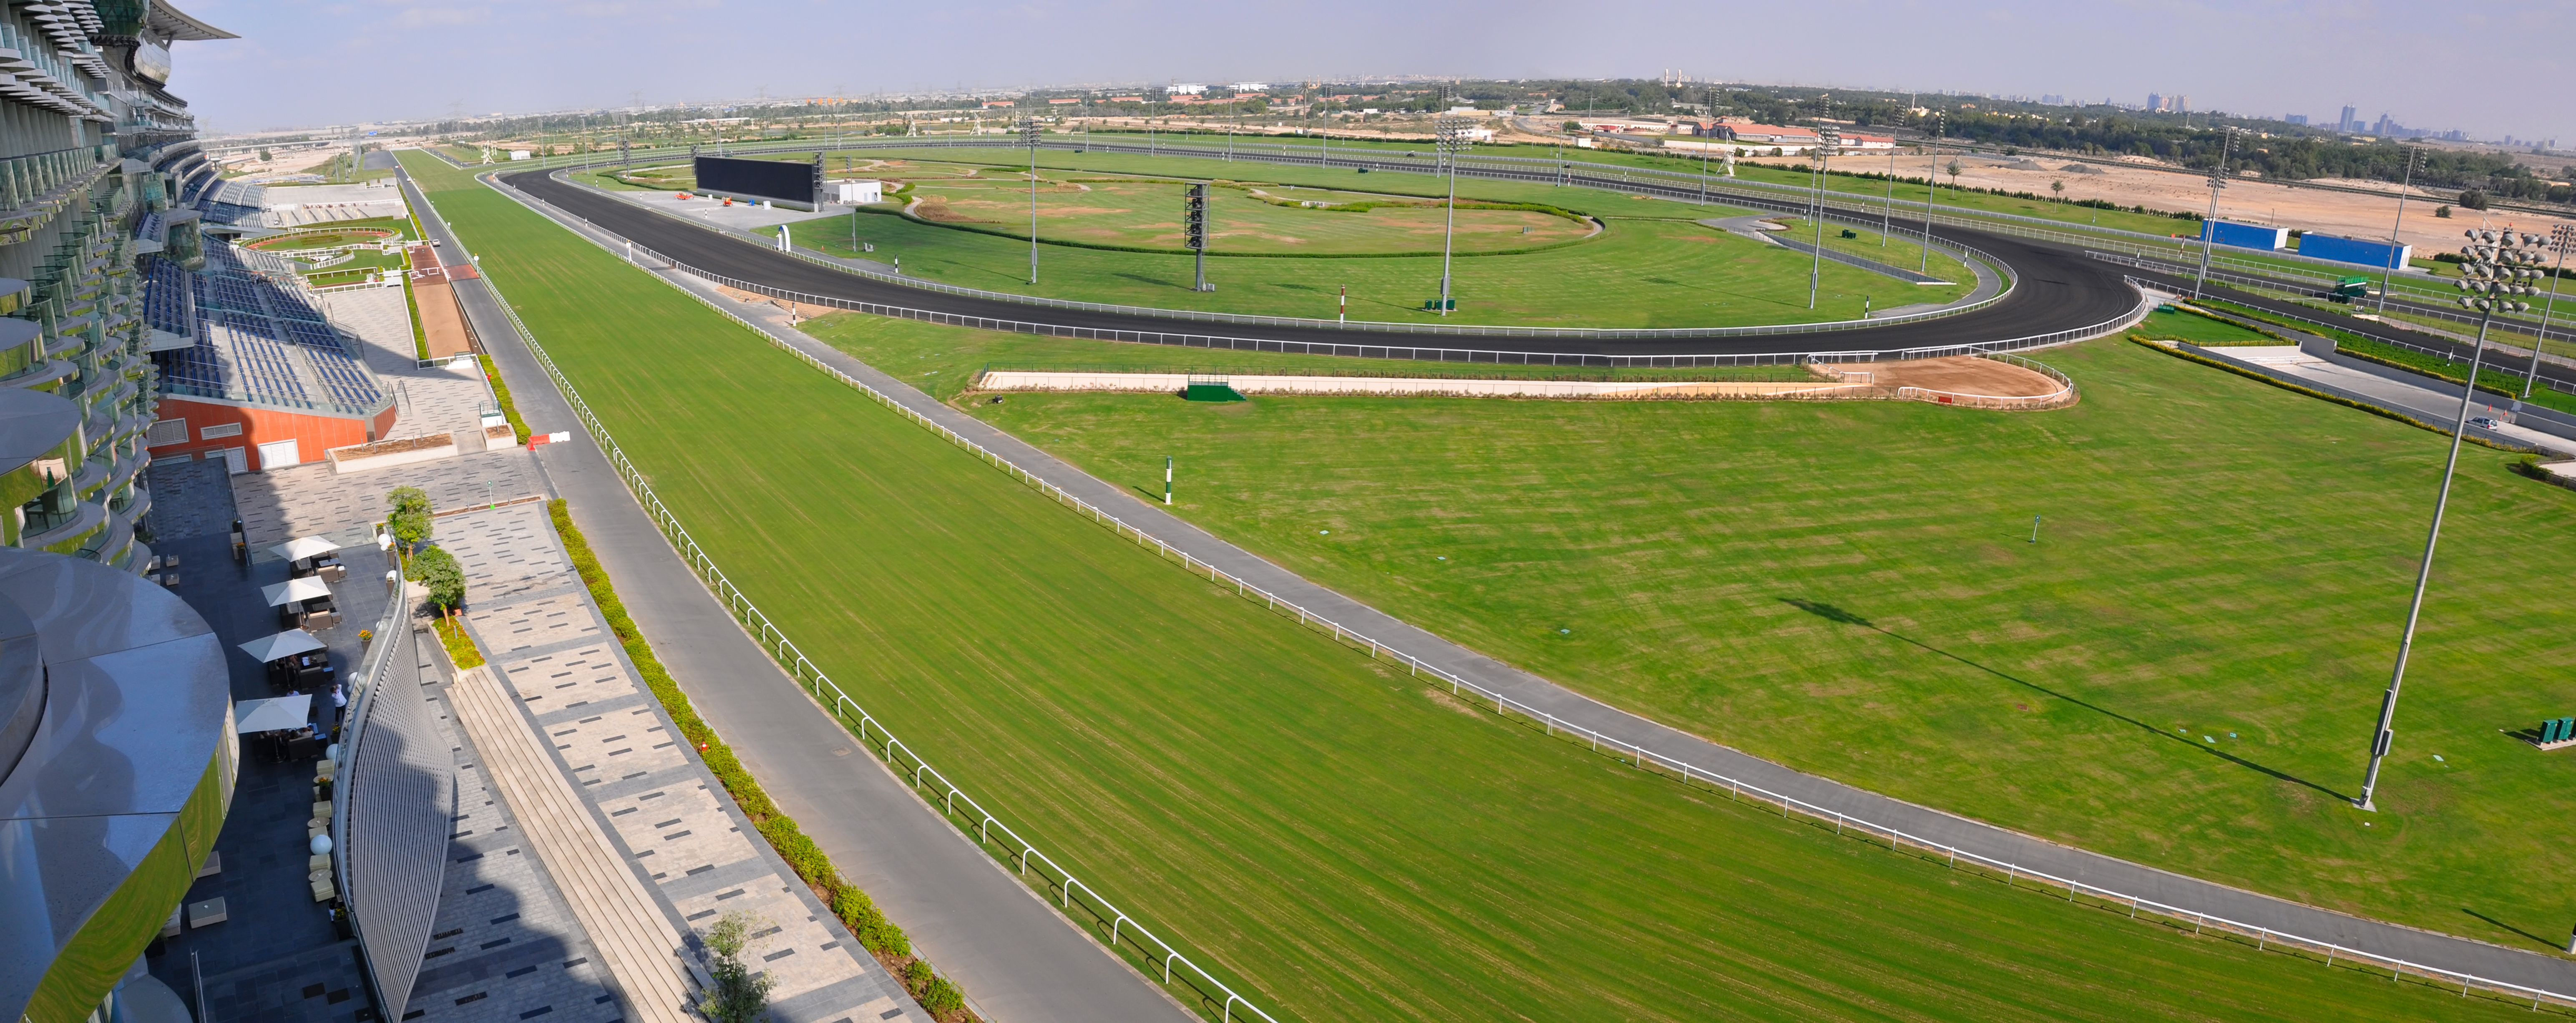 Dubai Race Course